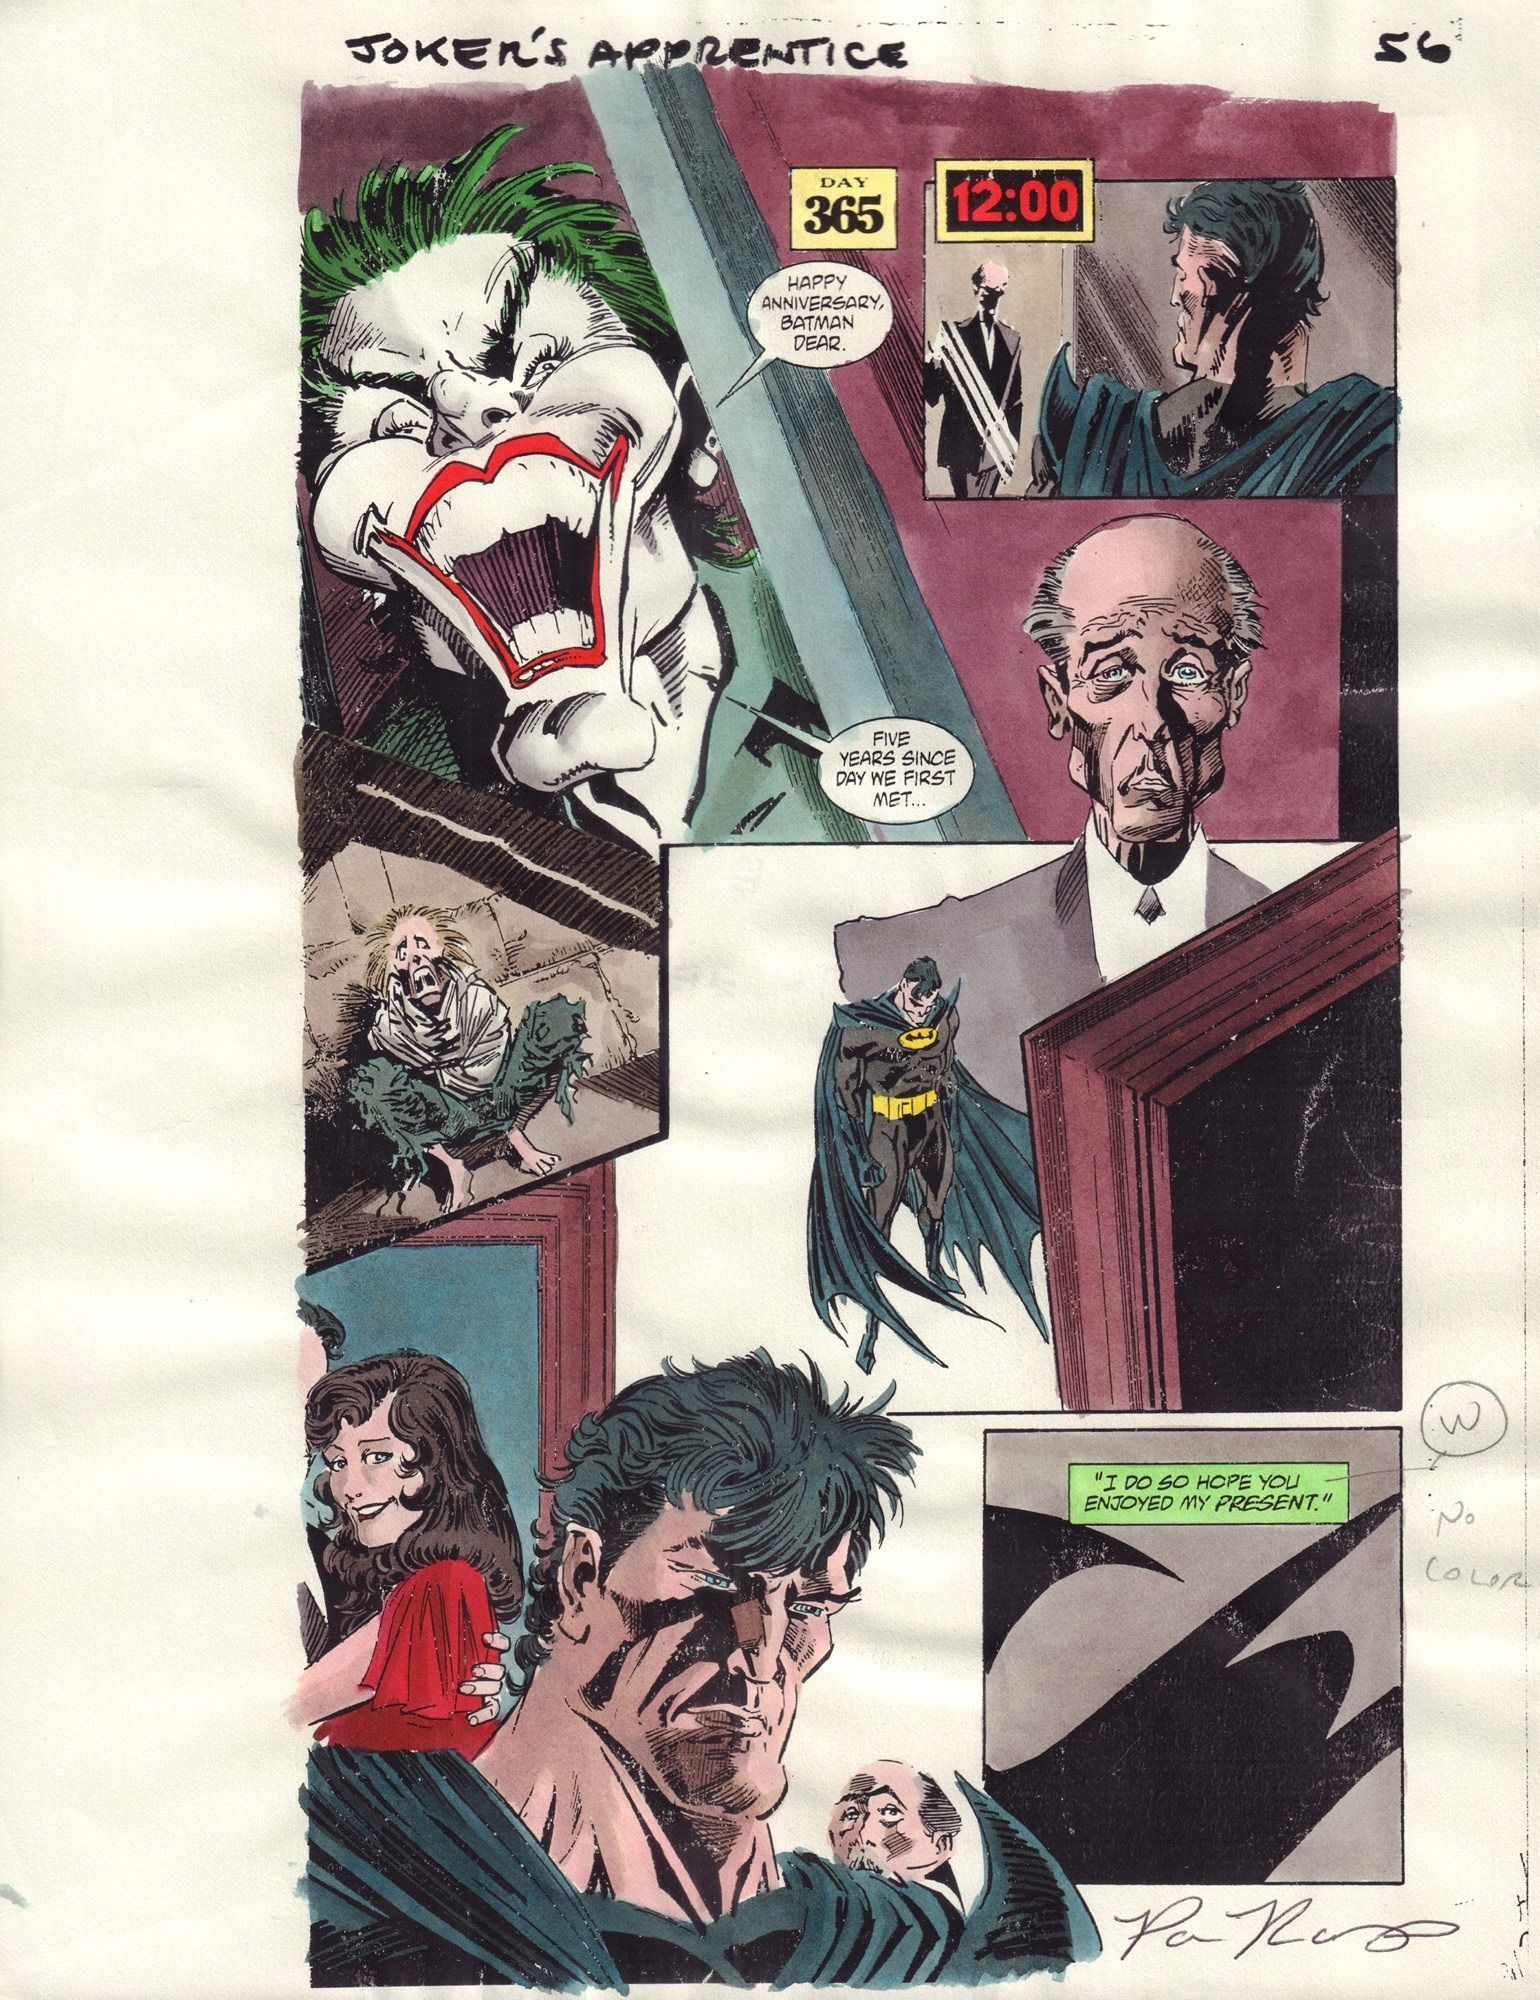 Batman: Joker's Apprentice #1 / 56